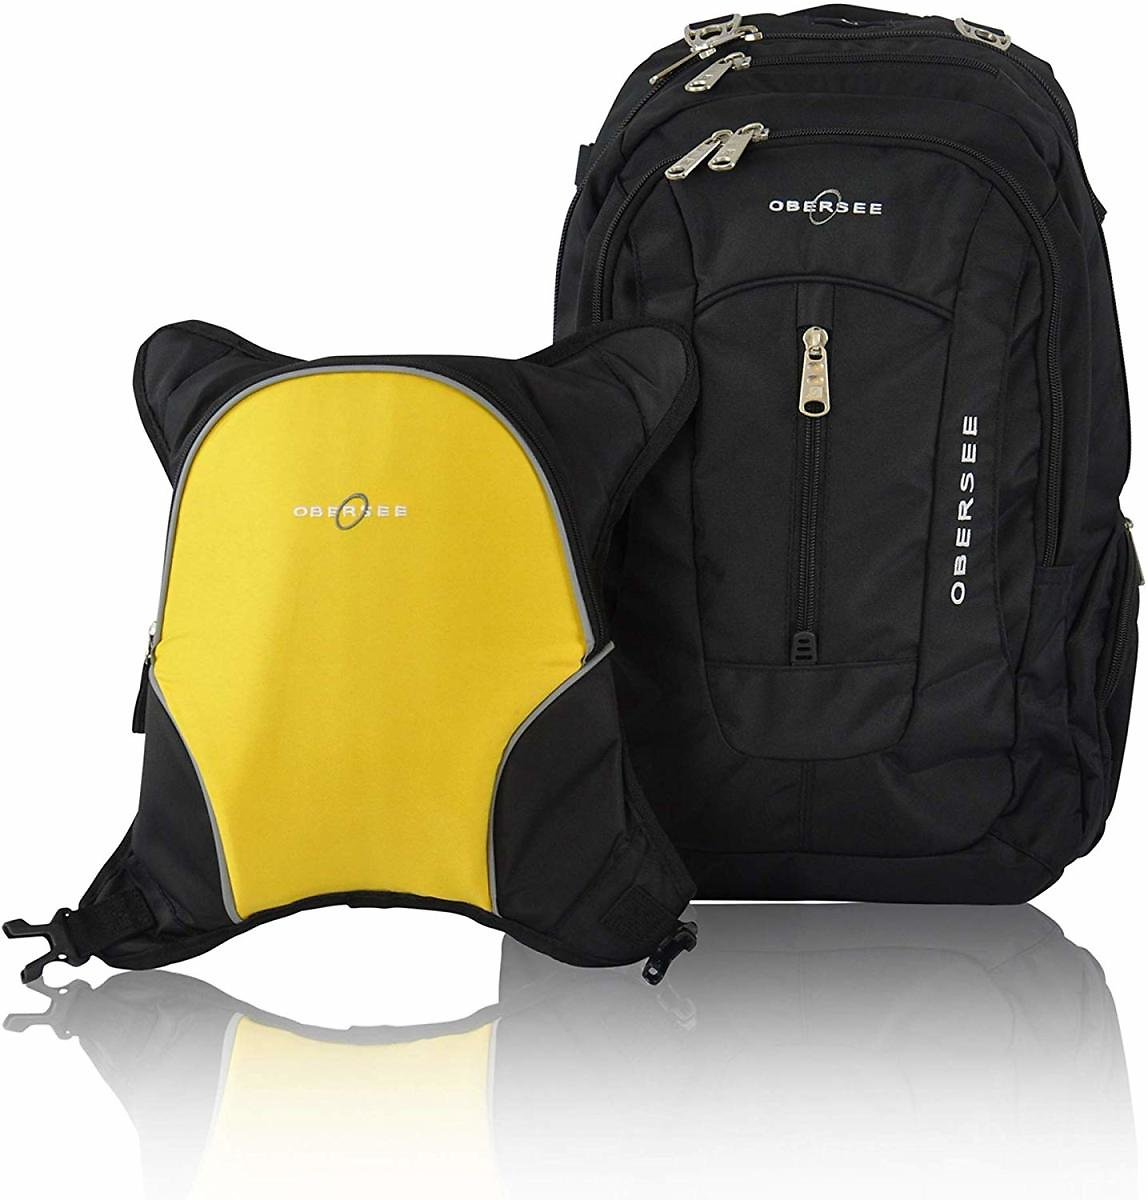 Obersee Bern Diaper Bag Backpack with Detachable Cooler, Black/Yellow